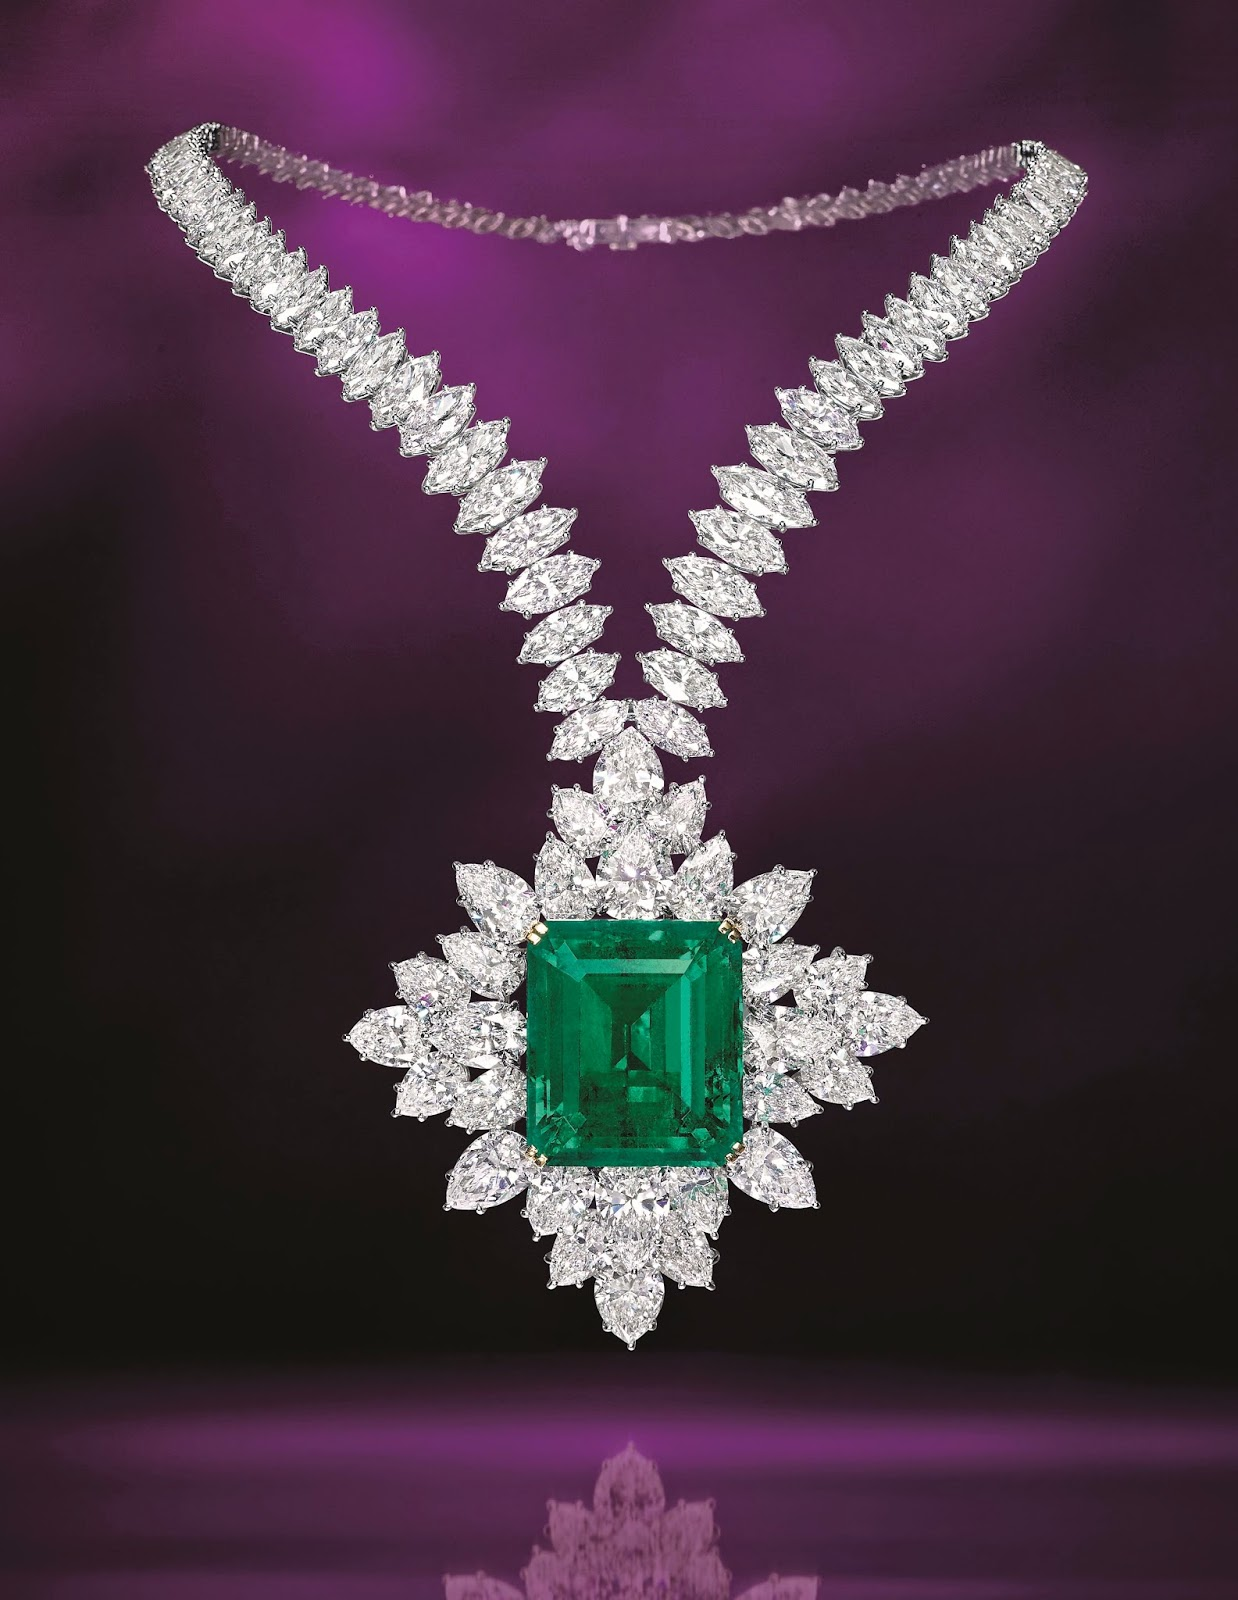 Kee hua chee live harry winston emerald and diamond necklace for harry winston emerald and diamond necklace for rm 12 million to rm 16 million truly the sparkle of spring aloadofball Images